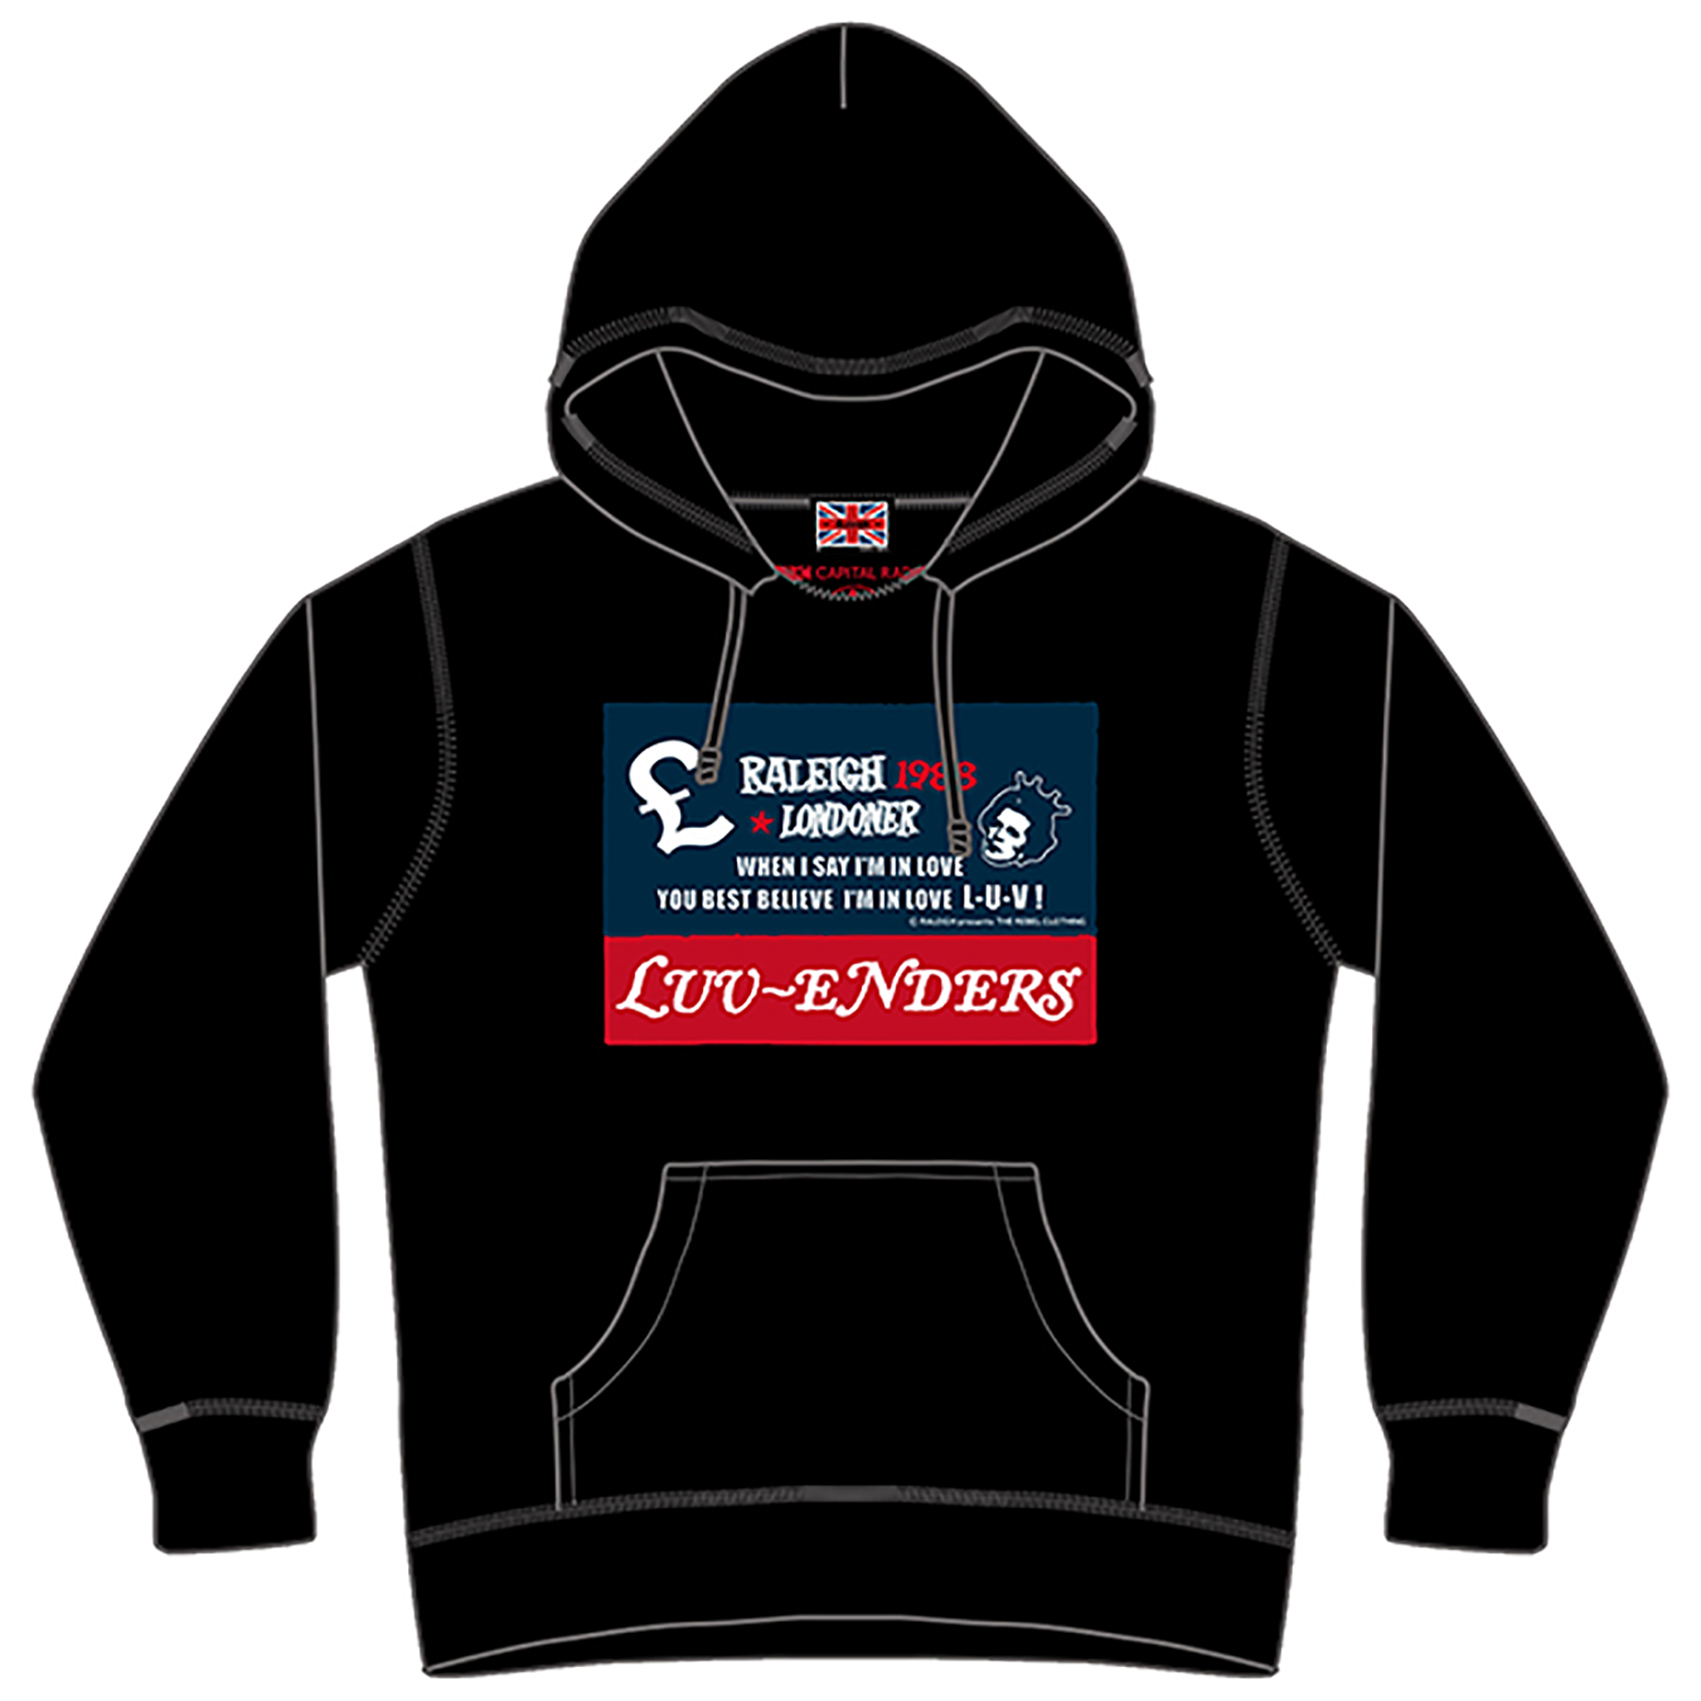 """One way ticket to London hoodie""  Raleigh design × Luv-Enders カスタムパーカー RVLG-014"